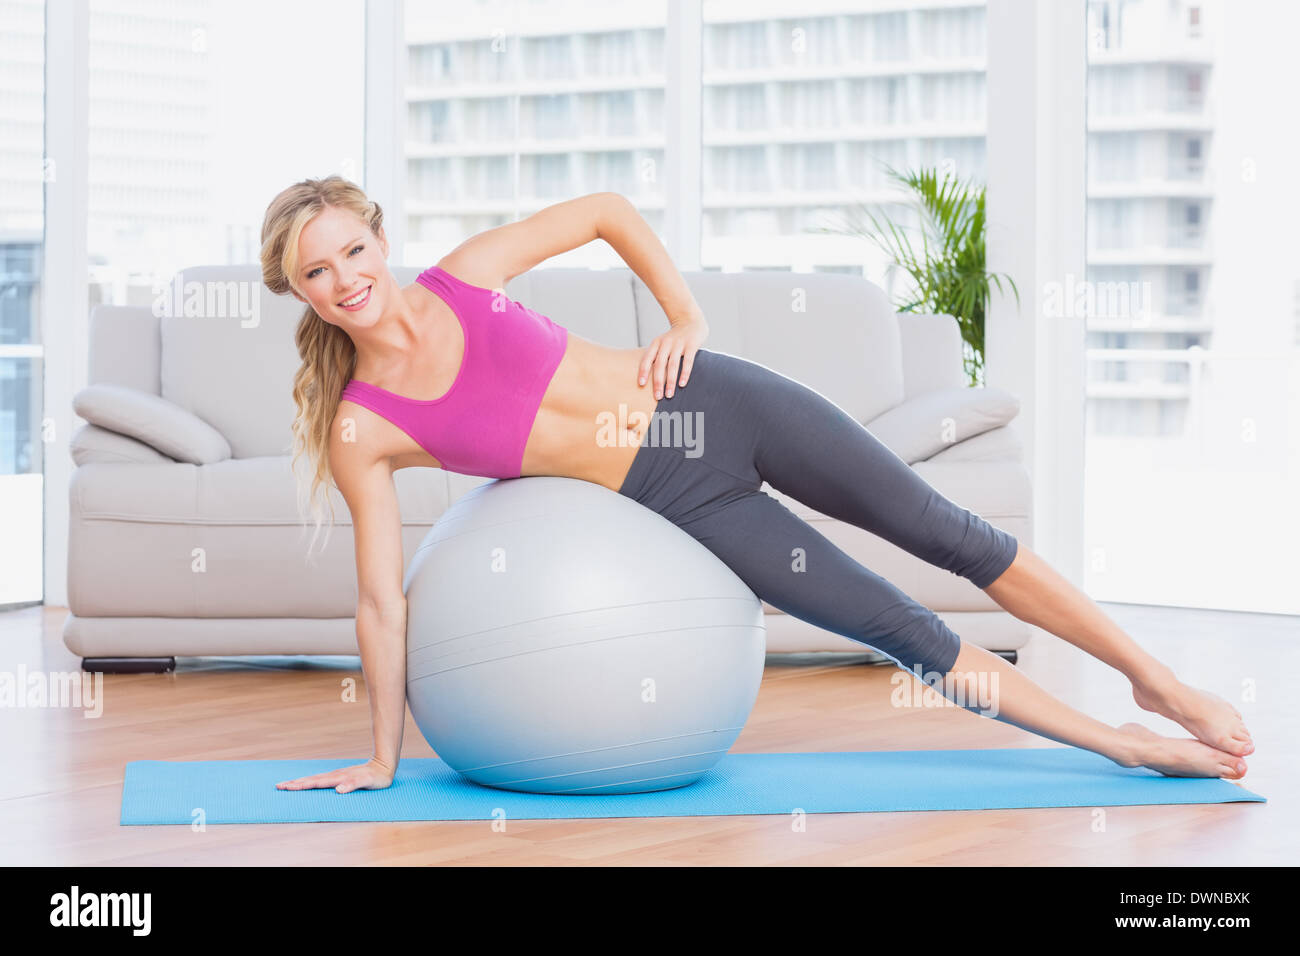 Cheerful fit blonde doing side plank with exercise ball - Stock Image